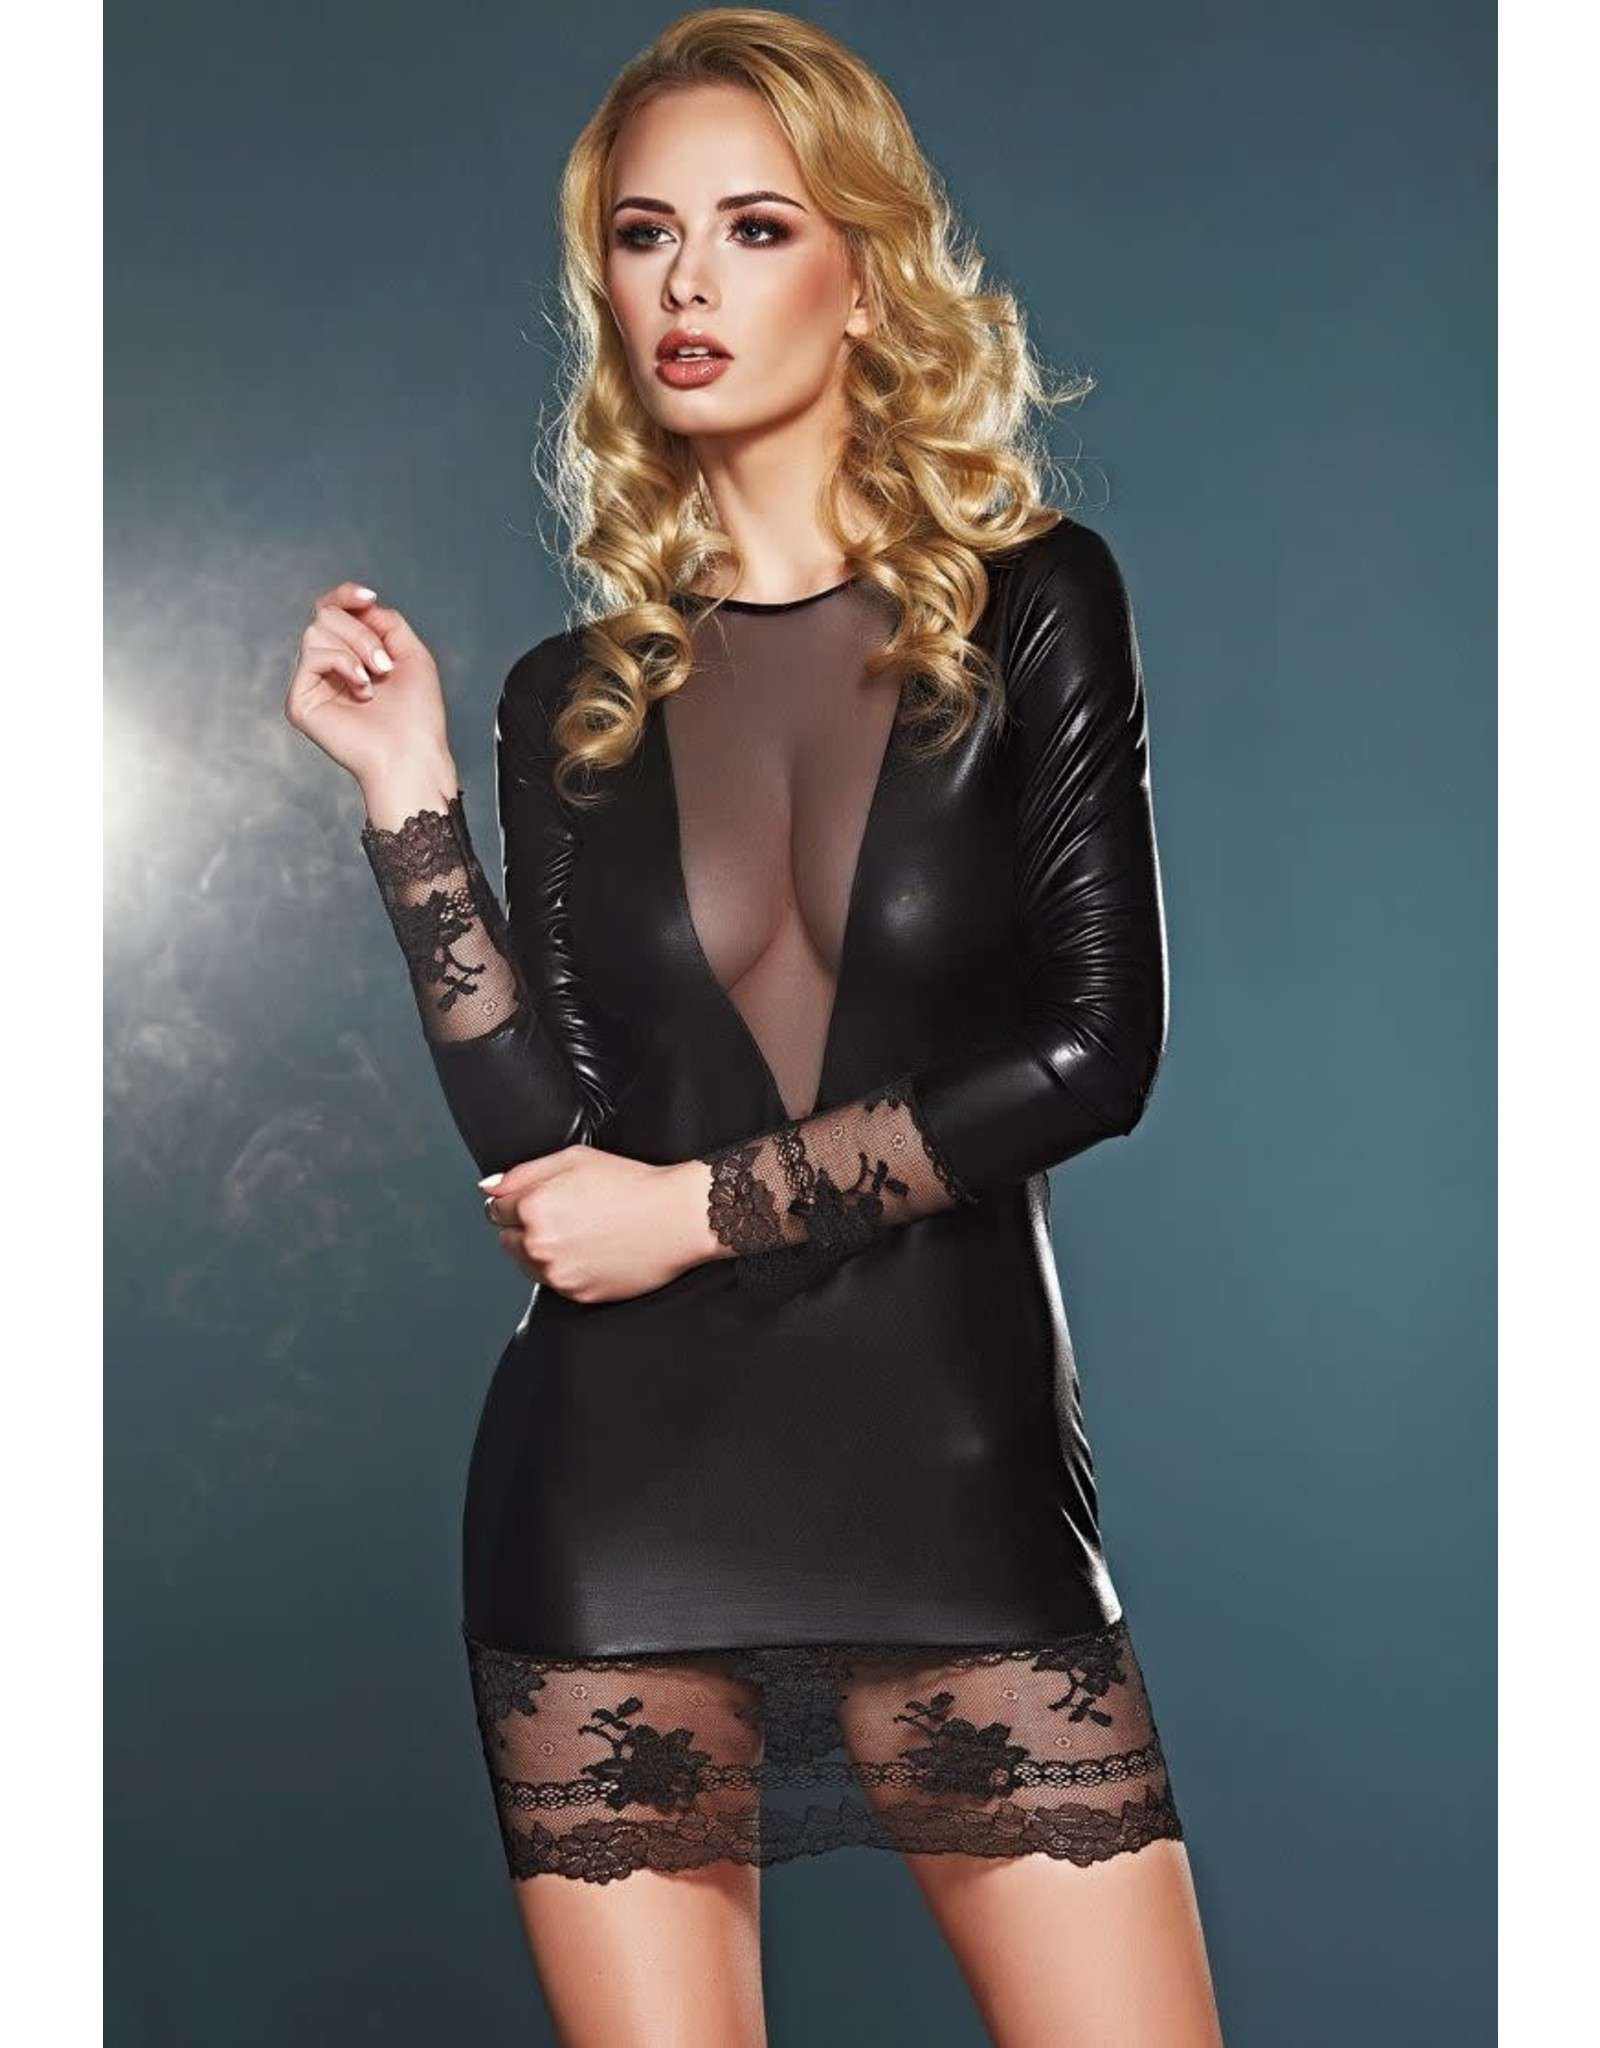 7 HEAVEN - ELEGANT LONG-SLEEVE WET-LOOK DRESS WITH LACE AND TULLE DETAILS - 2XL - BLACK